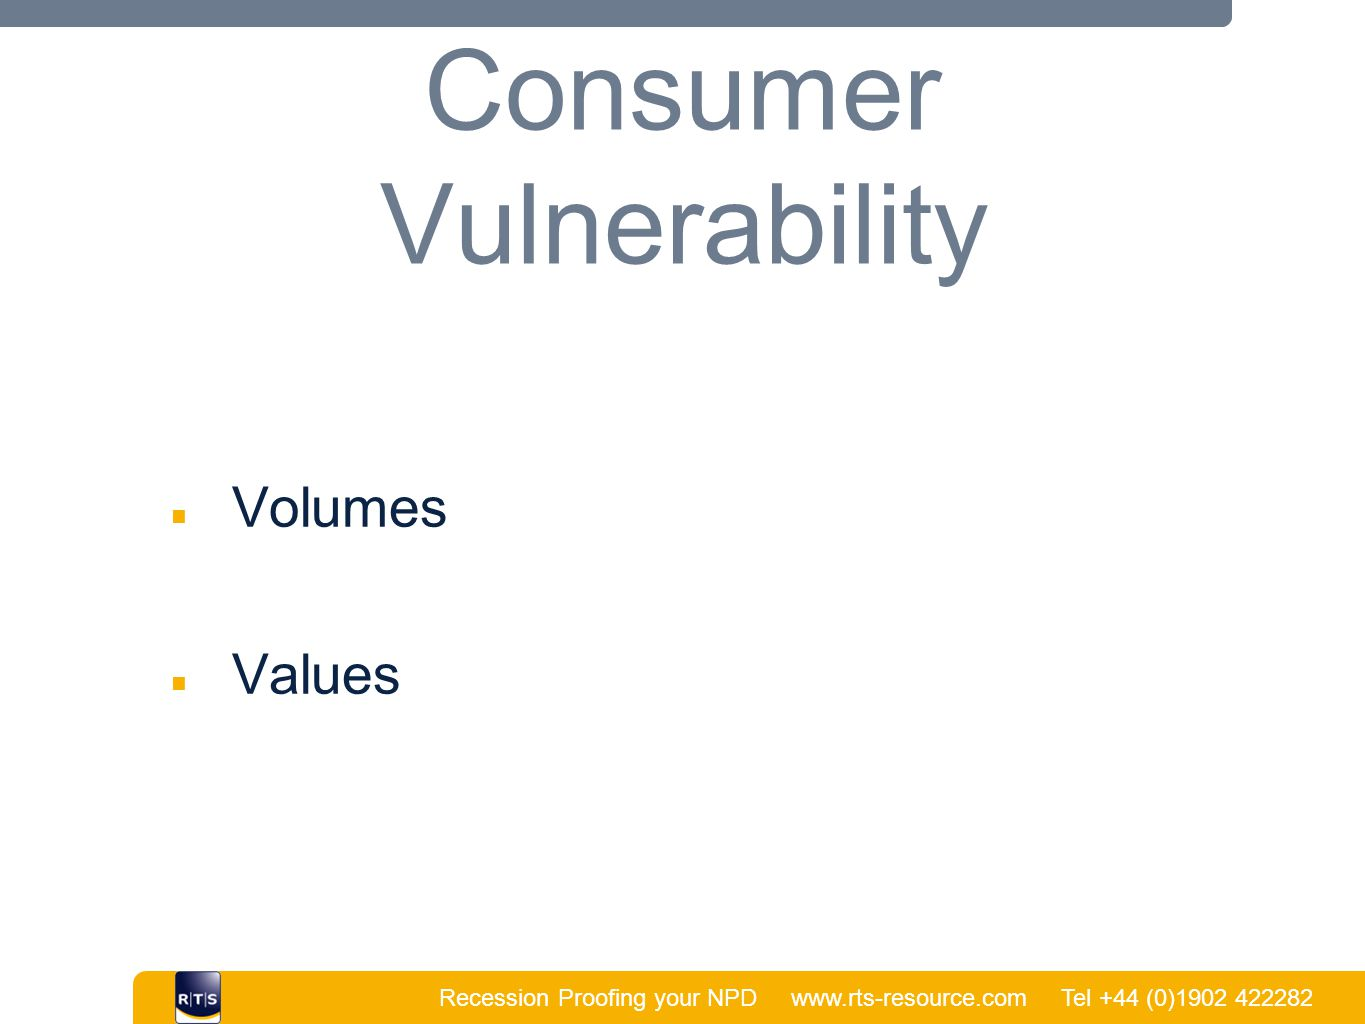 Recession Proofing your NPD www.rts-resource.com Tel +44 (0)1902 422282   Consumer Vulnerability ■ Volumes ■ Values